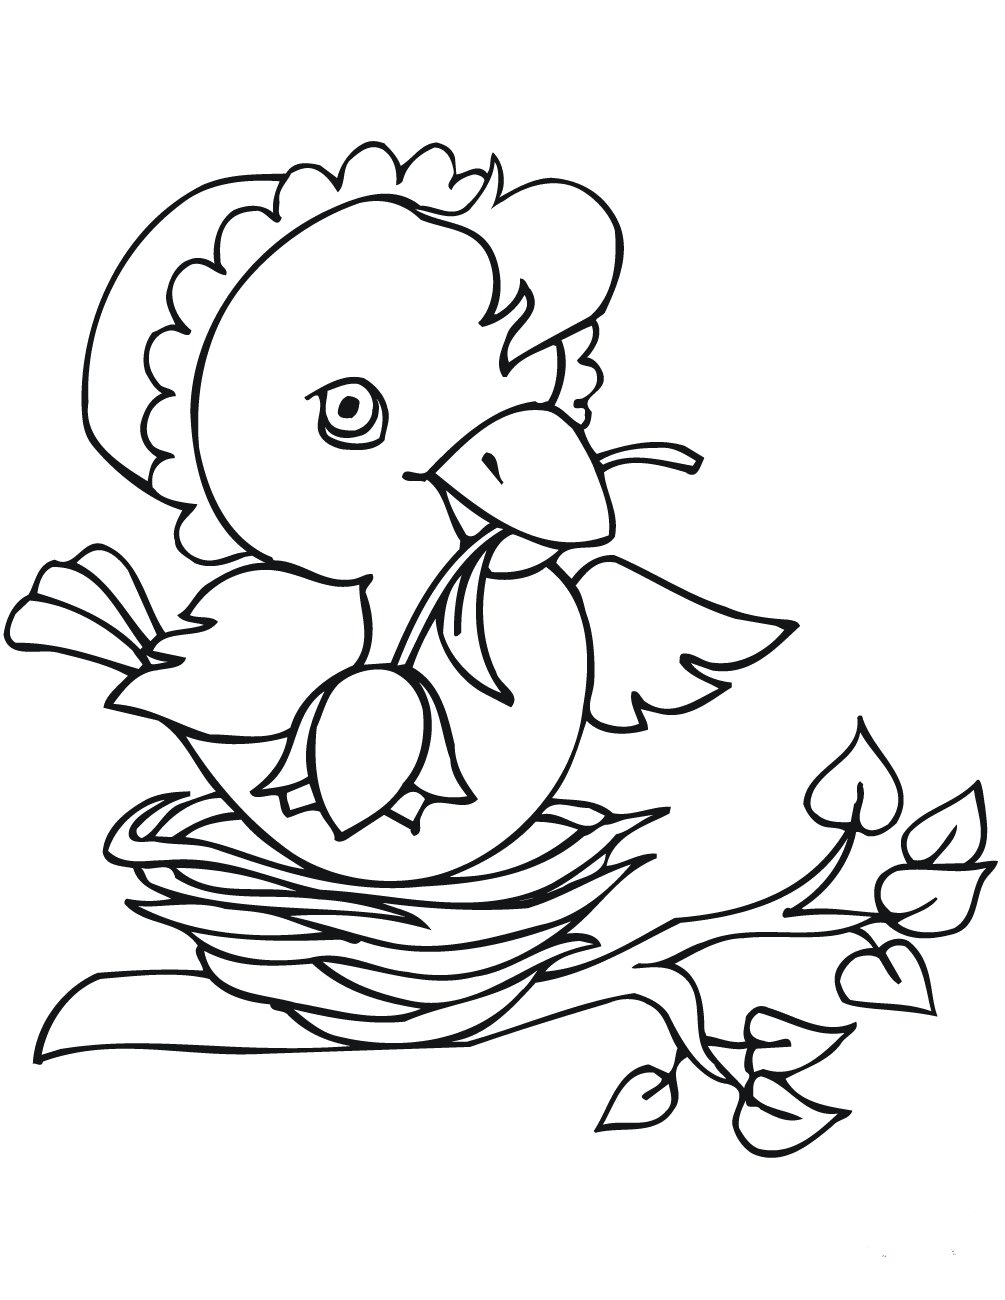 easter chicks coloring pages printable - photo#8